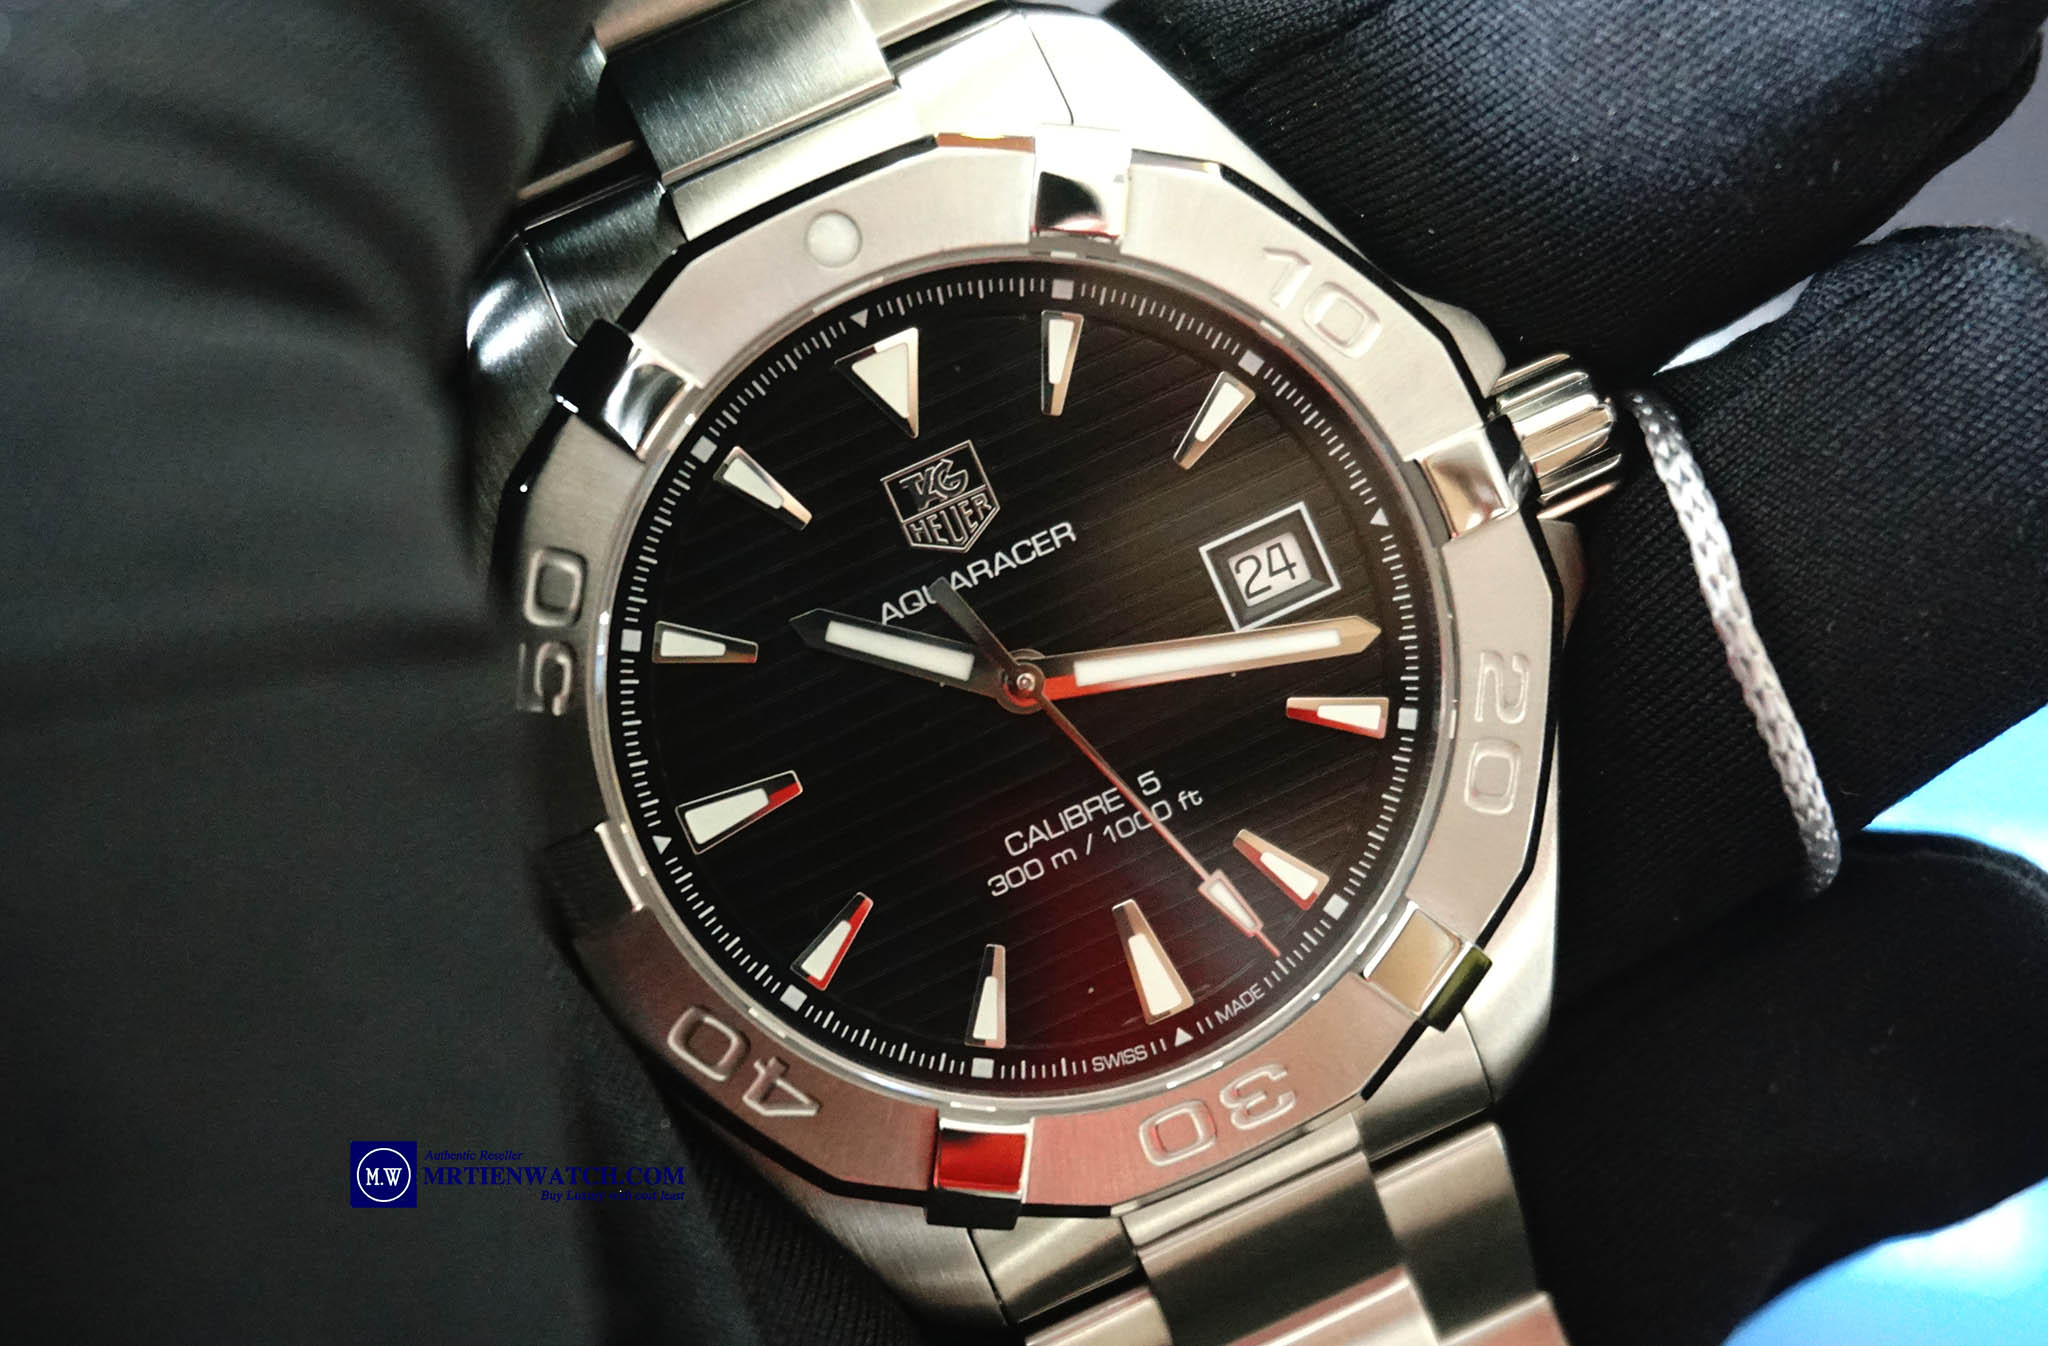 Tag Heuer Aquaracer WAY2110.BA0928 Calibre 5 Automatic